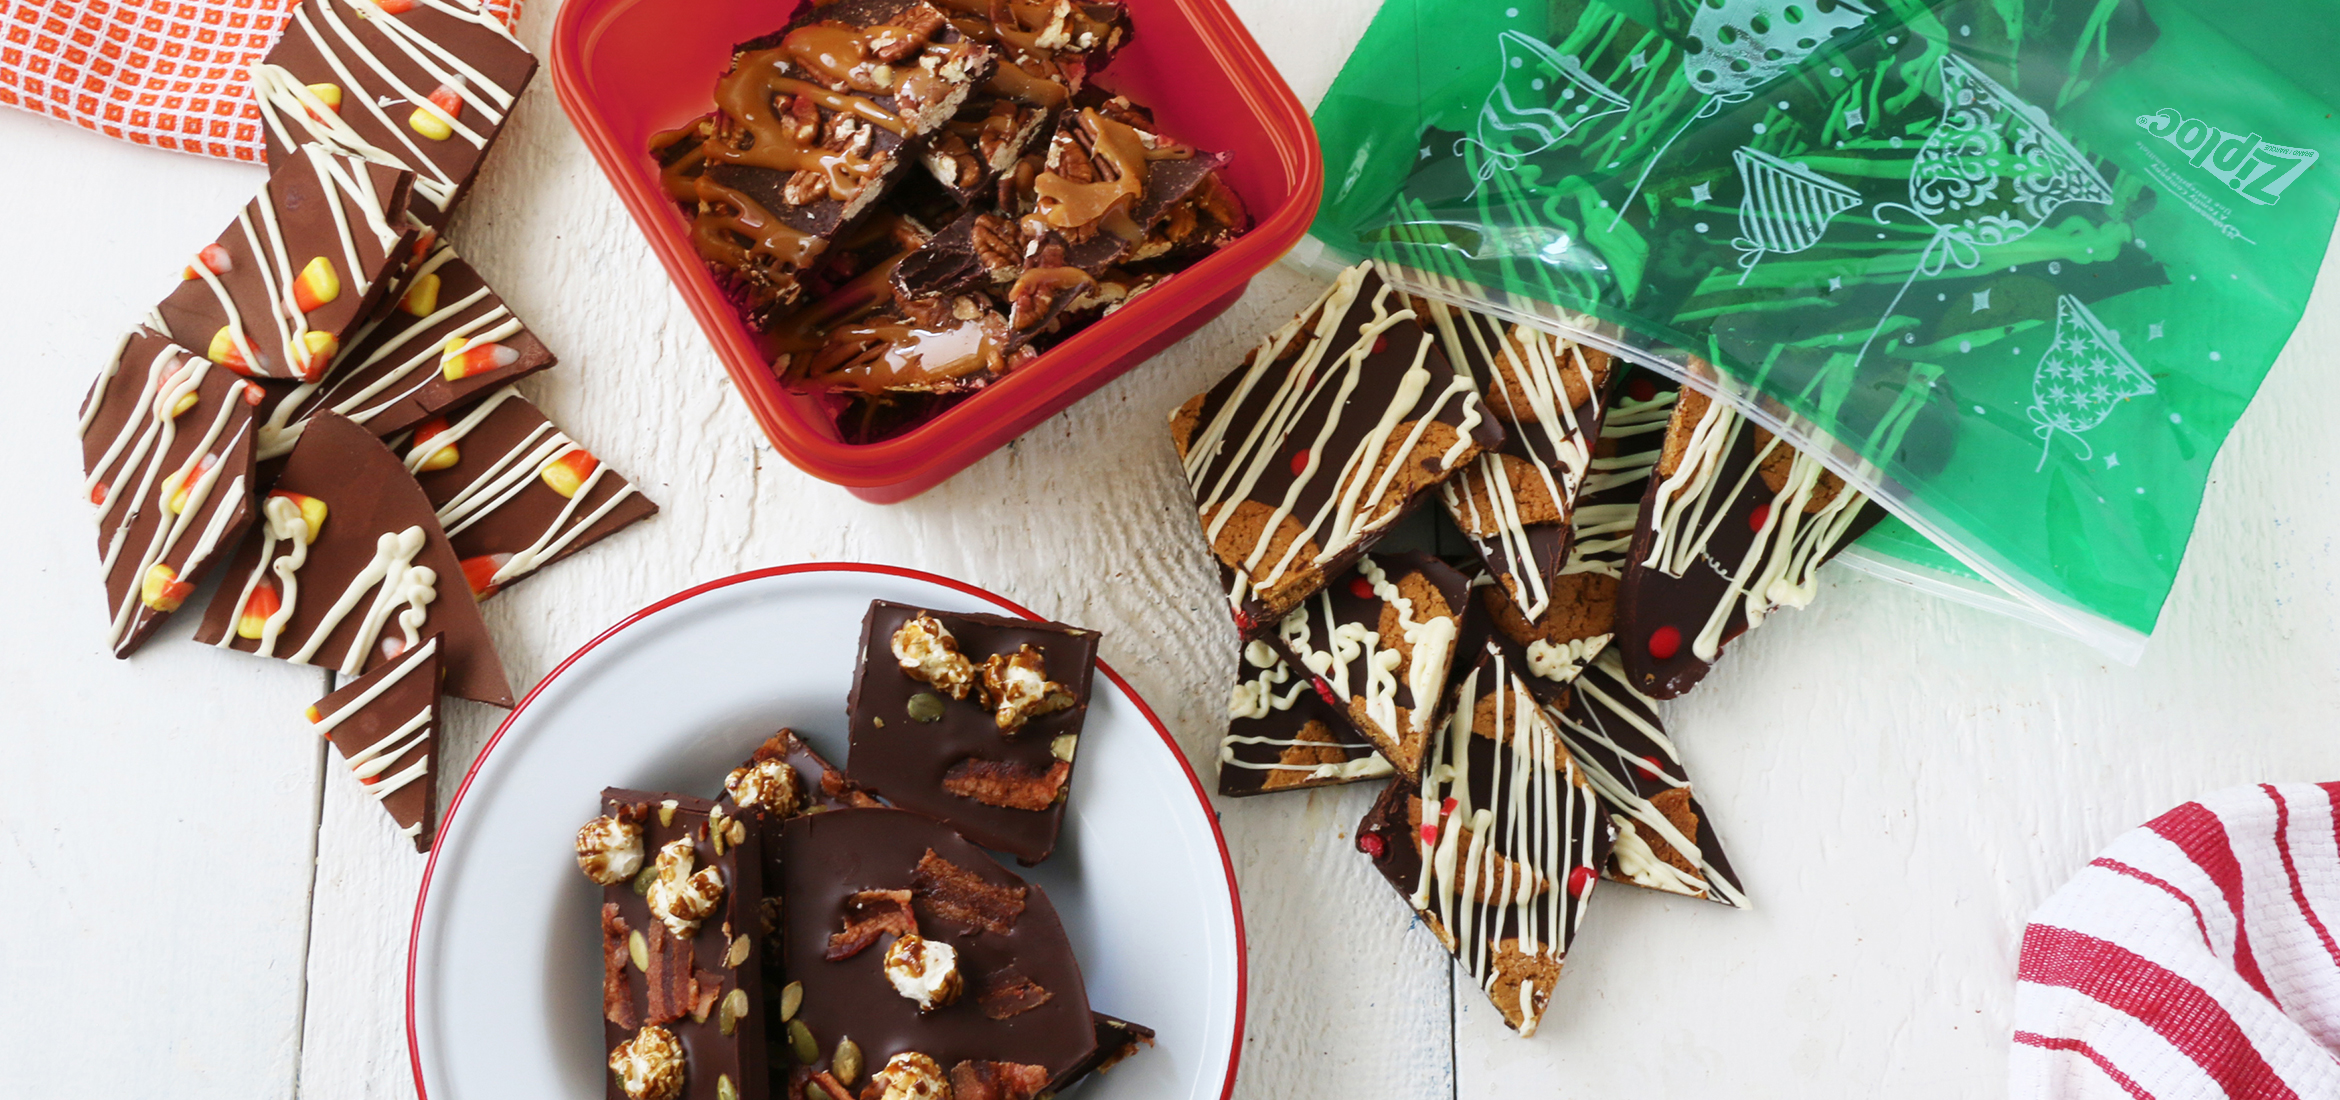 Sweet, Seasonal and Giftable: 4 Bark Candy Twists